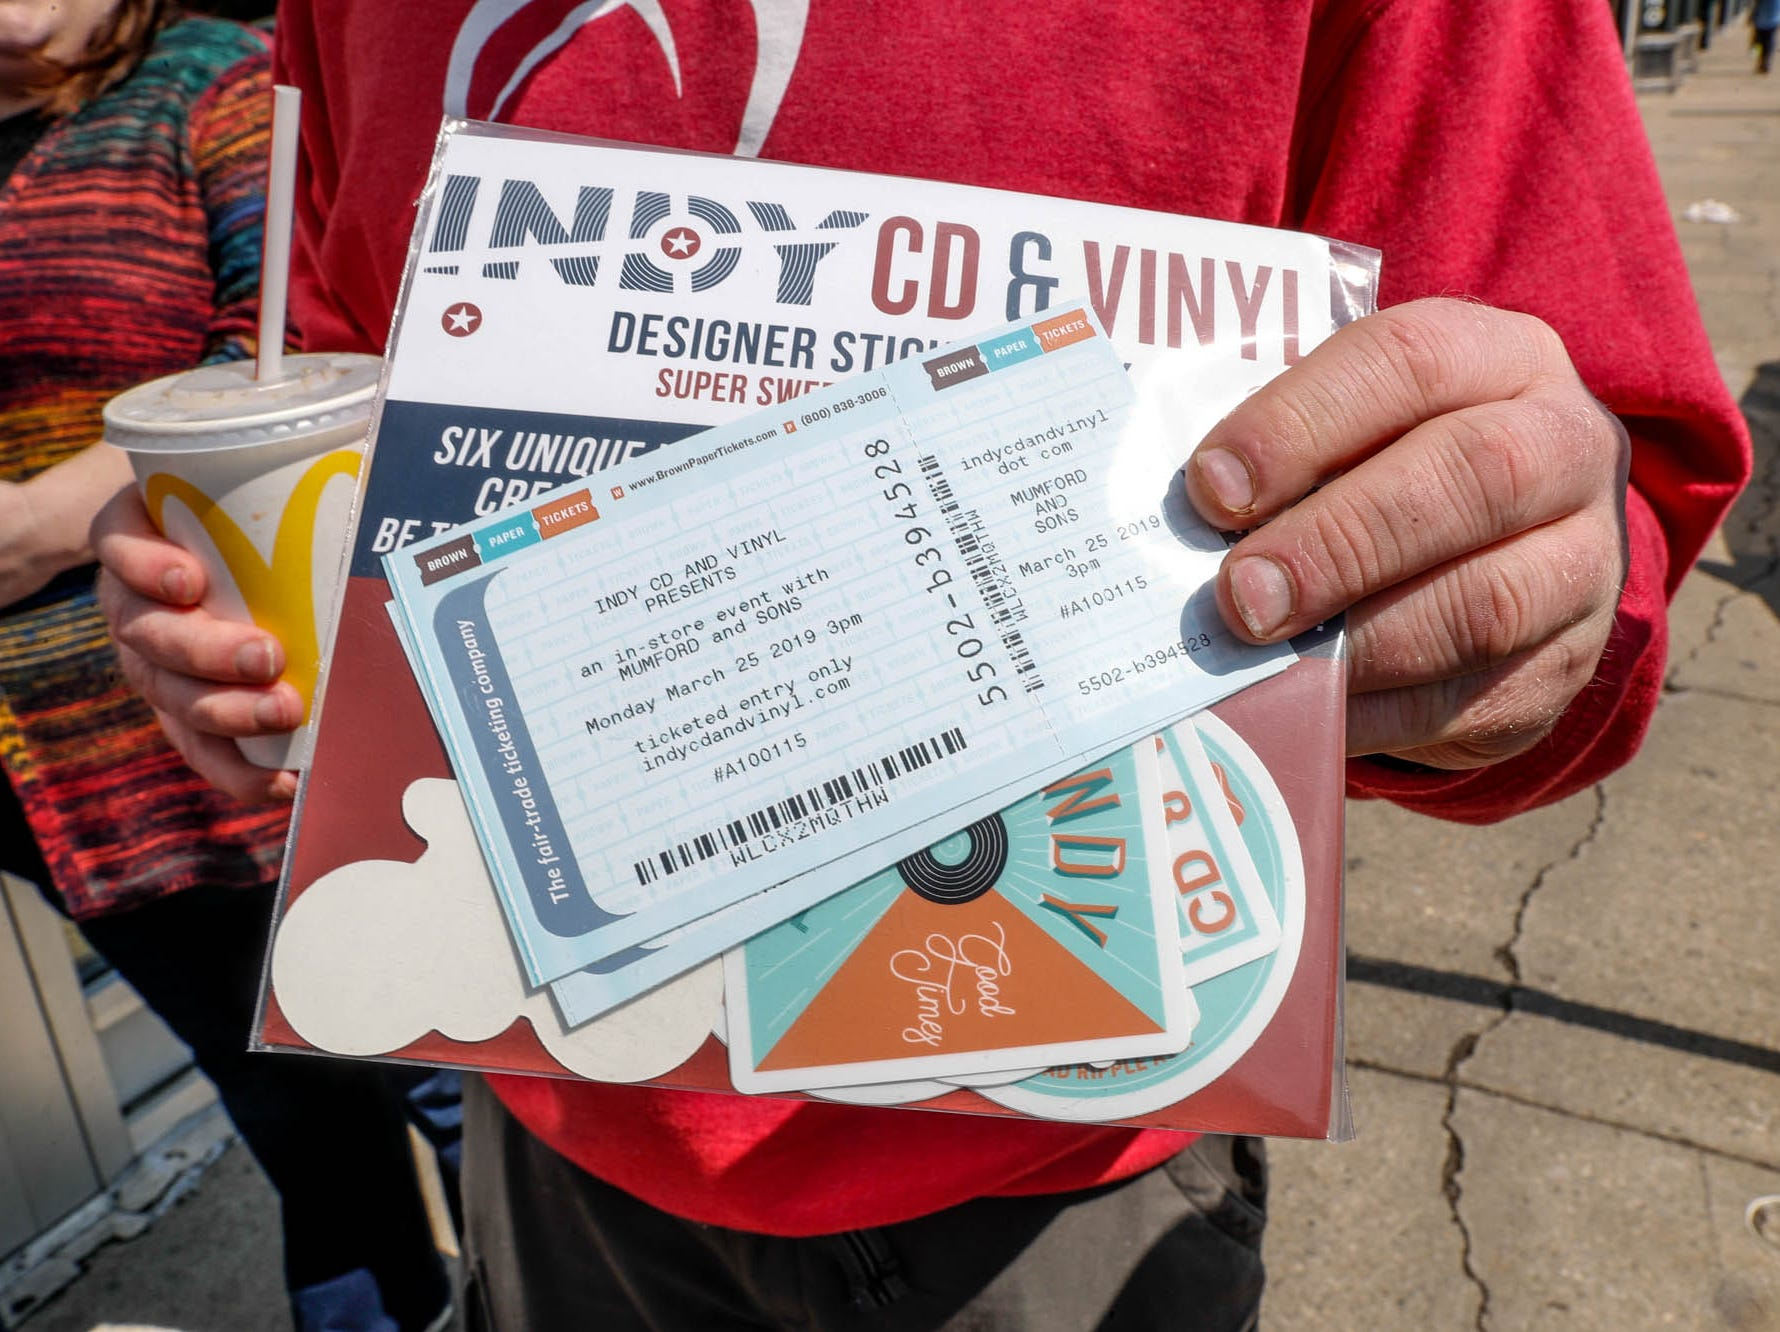 A Mumford & Sons fan shows off his tickets for a special in-store appearance at Indy CD & Vinyl on Monday, March 25, 2019.